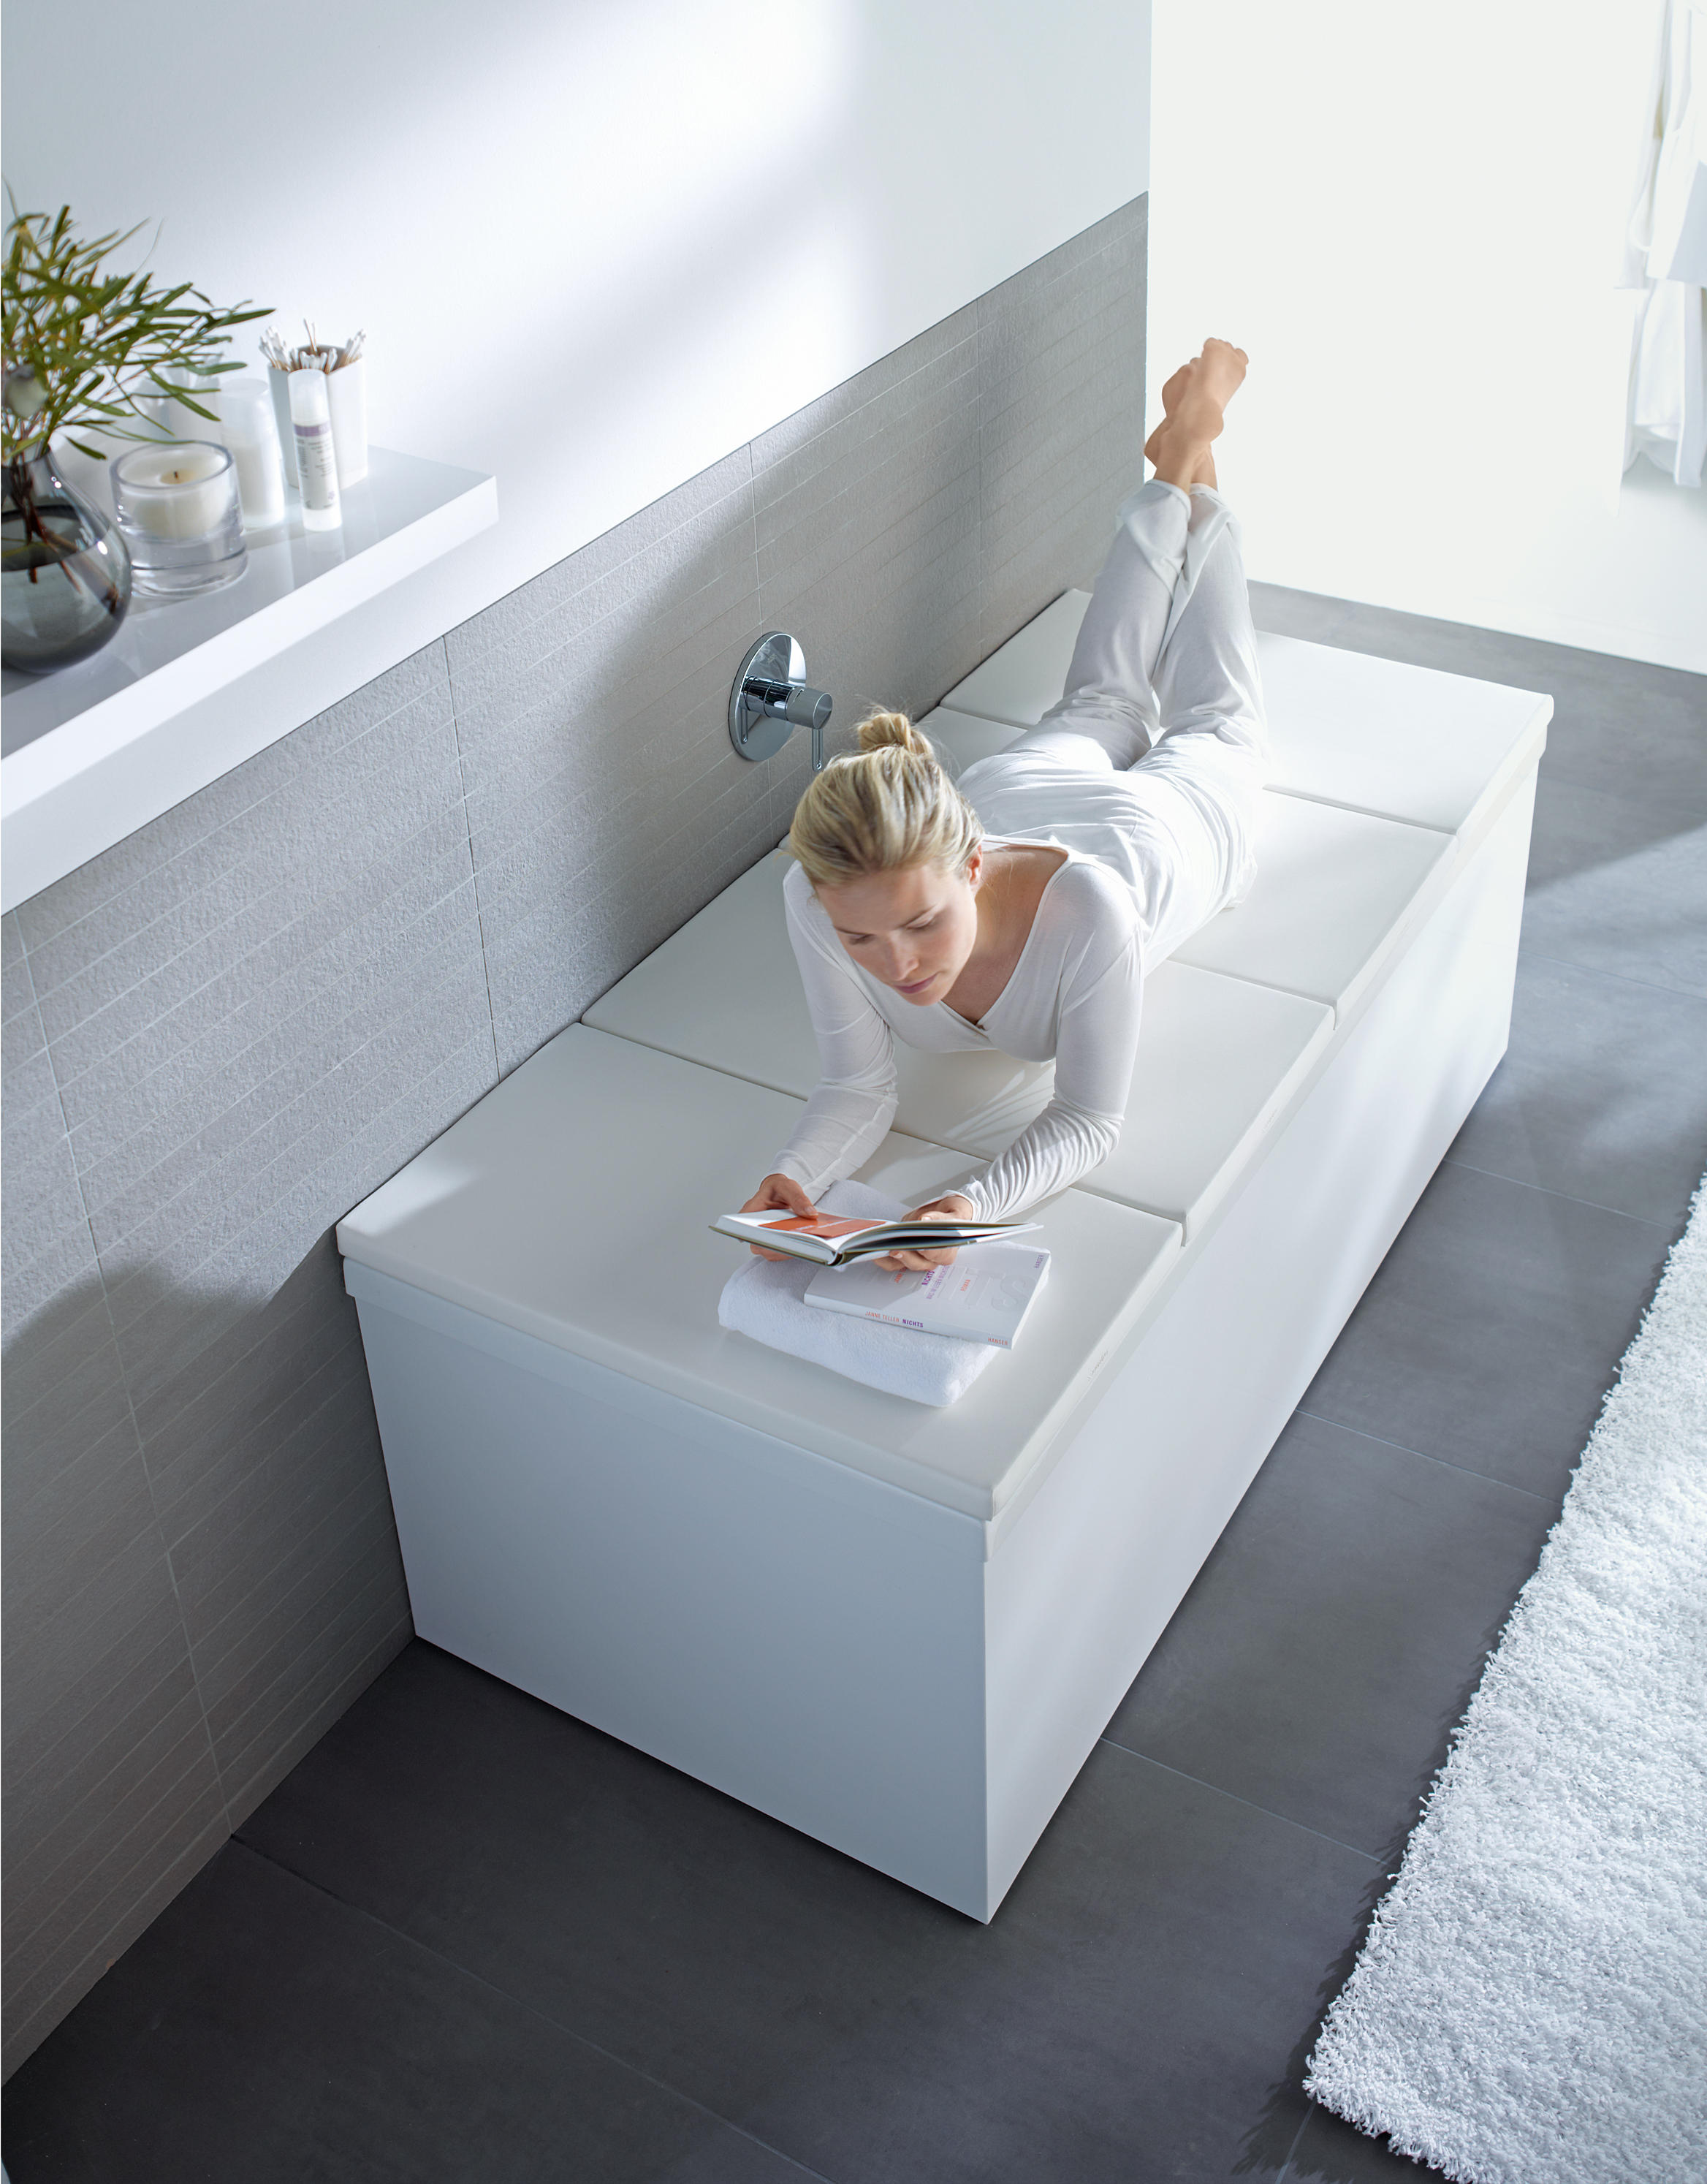 sieger tubs en d b whirlpool tub bathtubs duravit happy by vascheidromassaggio hydromassage catalog bathtub design